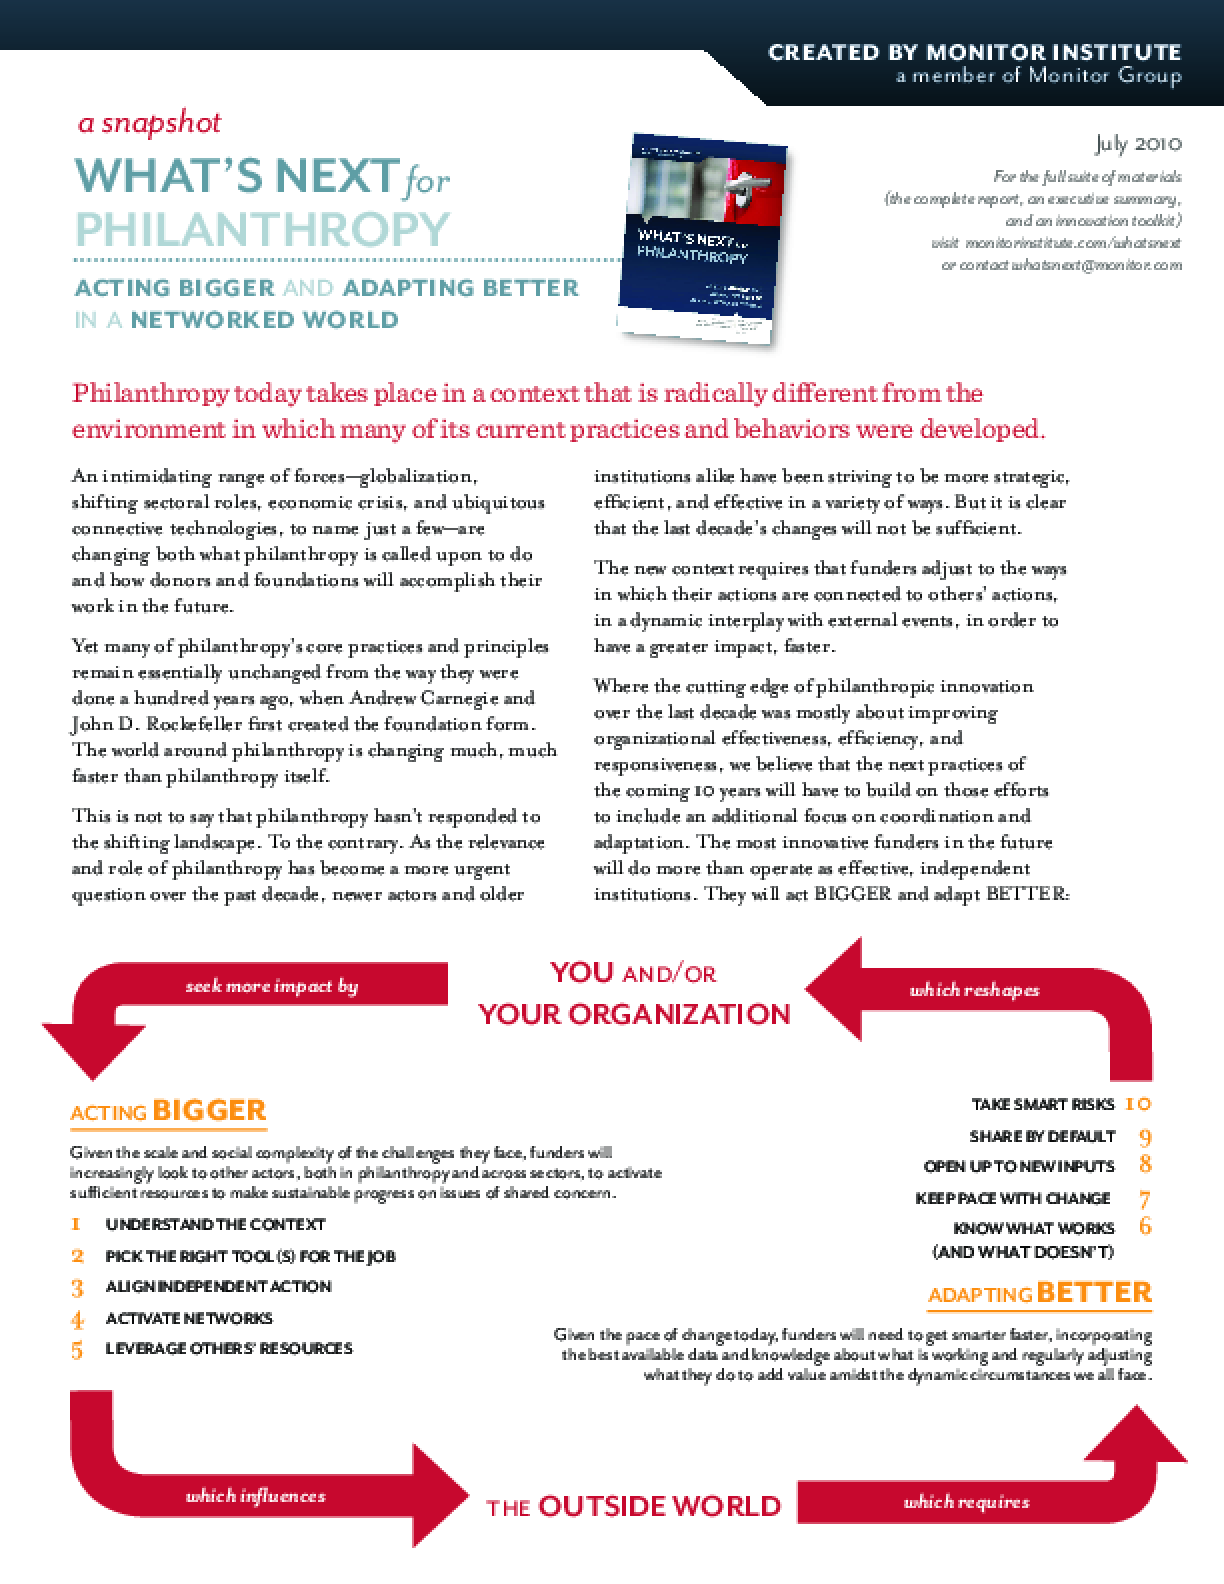 What's Next for Philanthropy: Acting Bigger and Adapting Better in a Networked World (Snapshot)